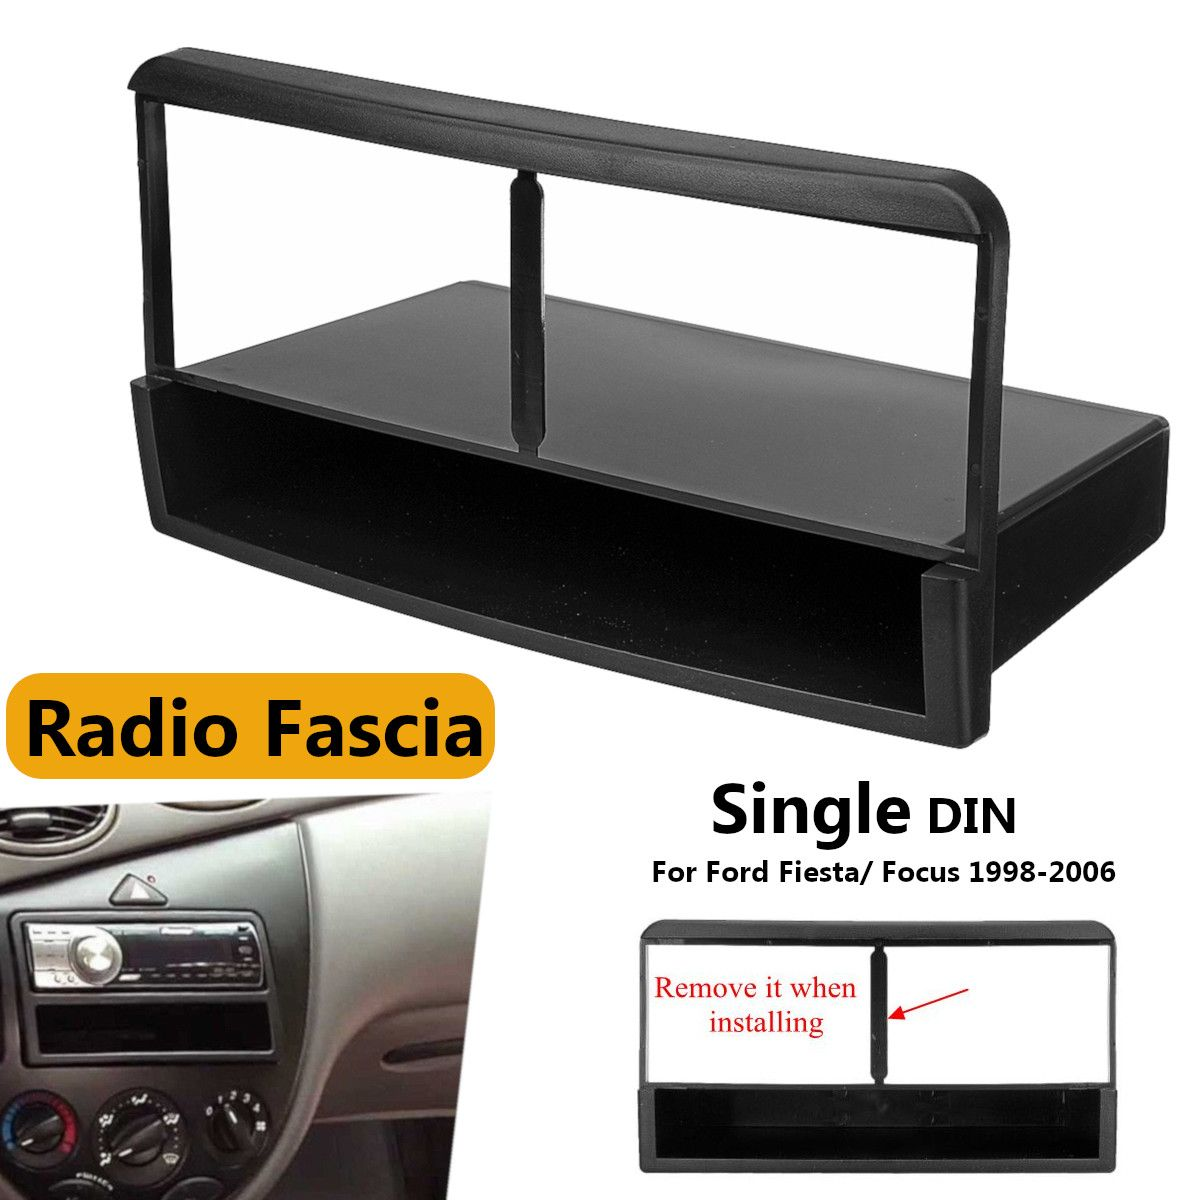 Auto Stereo Radio DVD Fascia Panel Platte Rahmen 1 Din Panel Audio Dash Mount Kit Adapter für Ford für Fiesta für Fokus 1998-2006